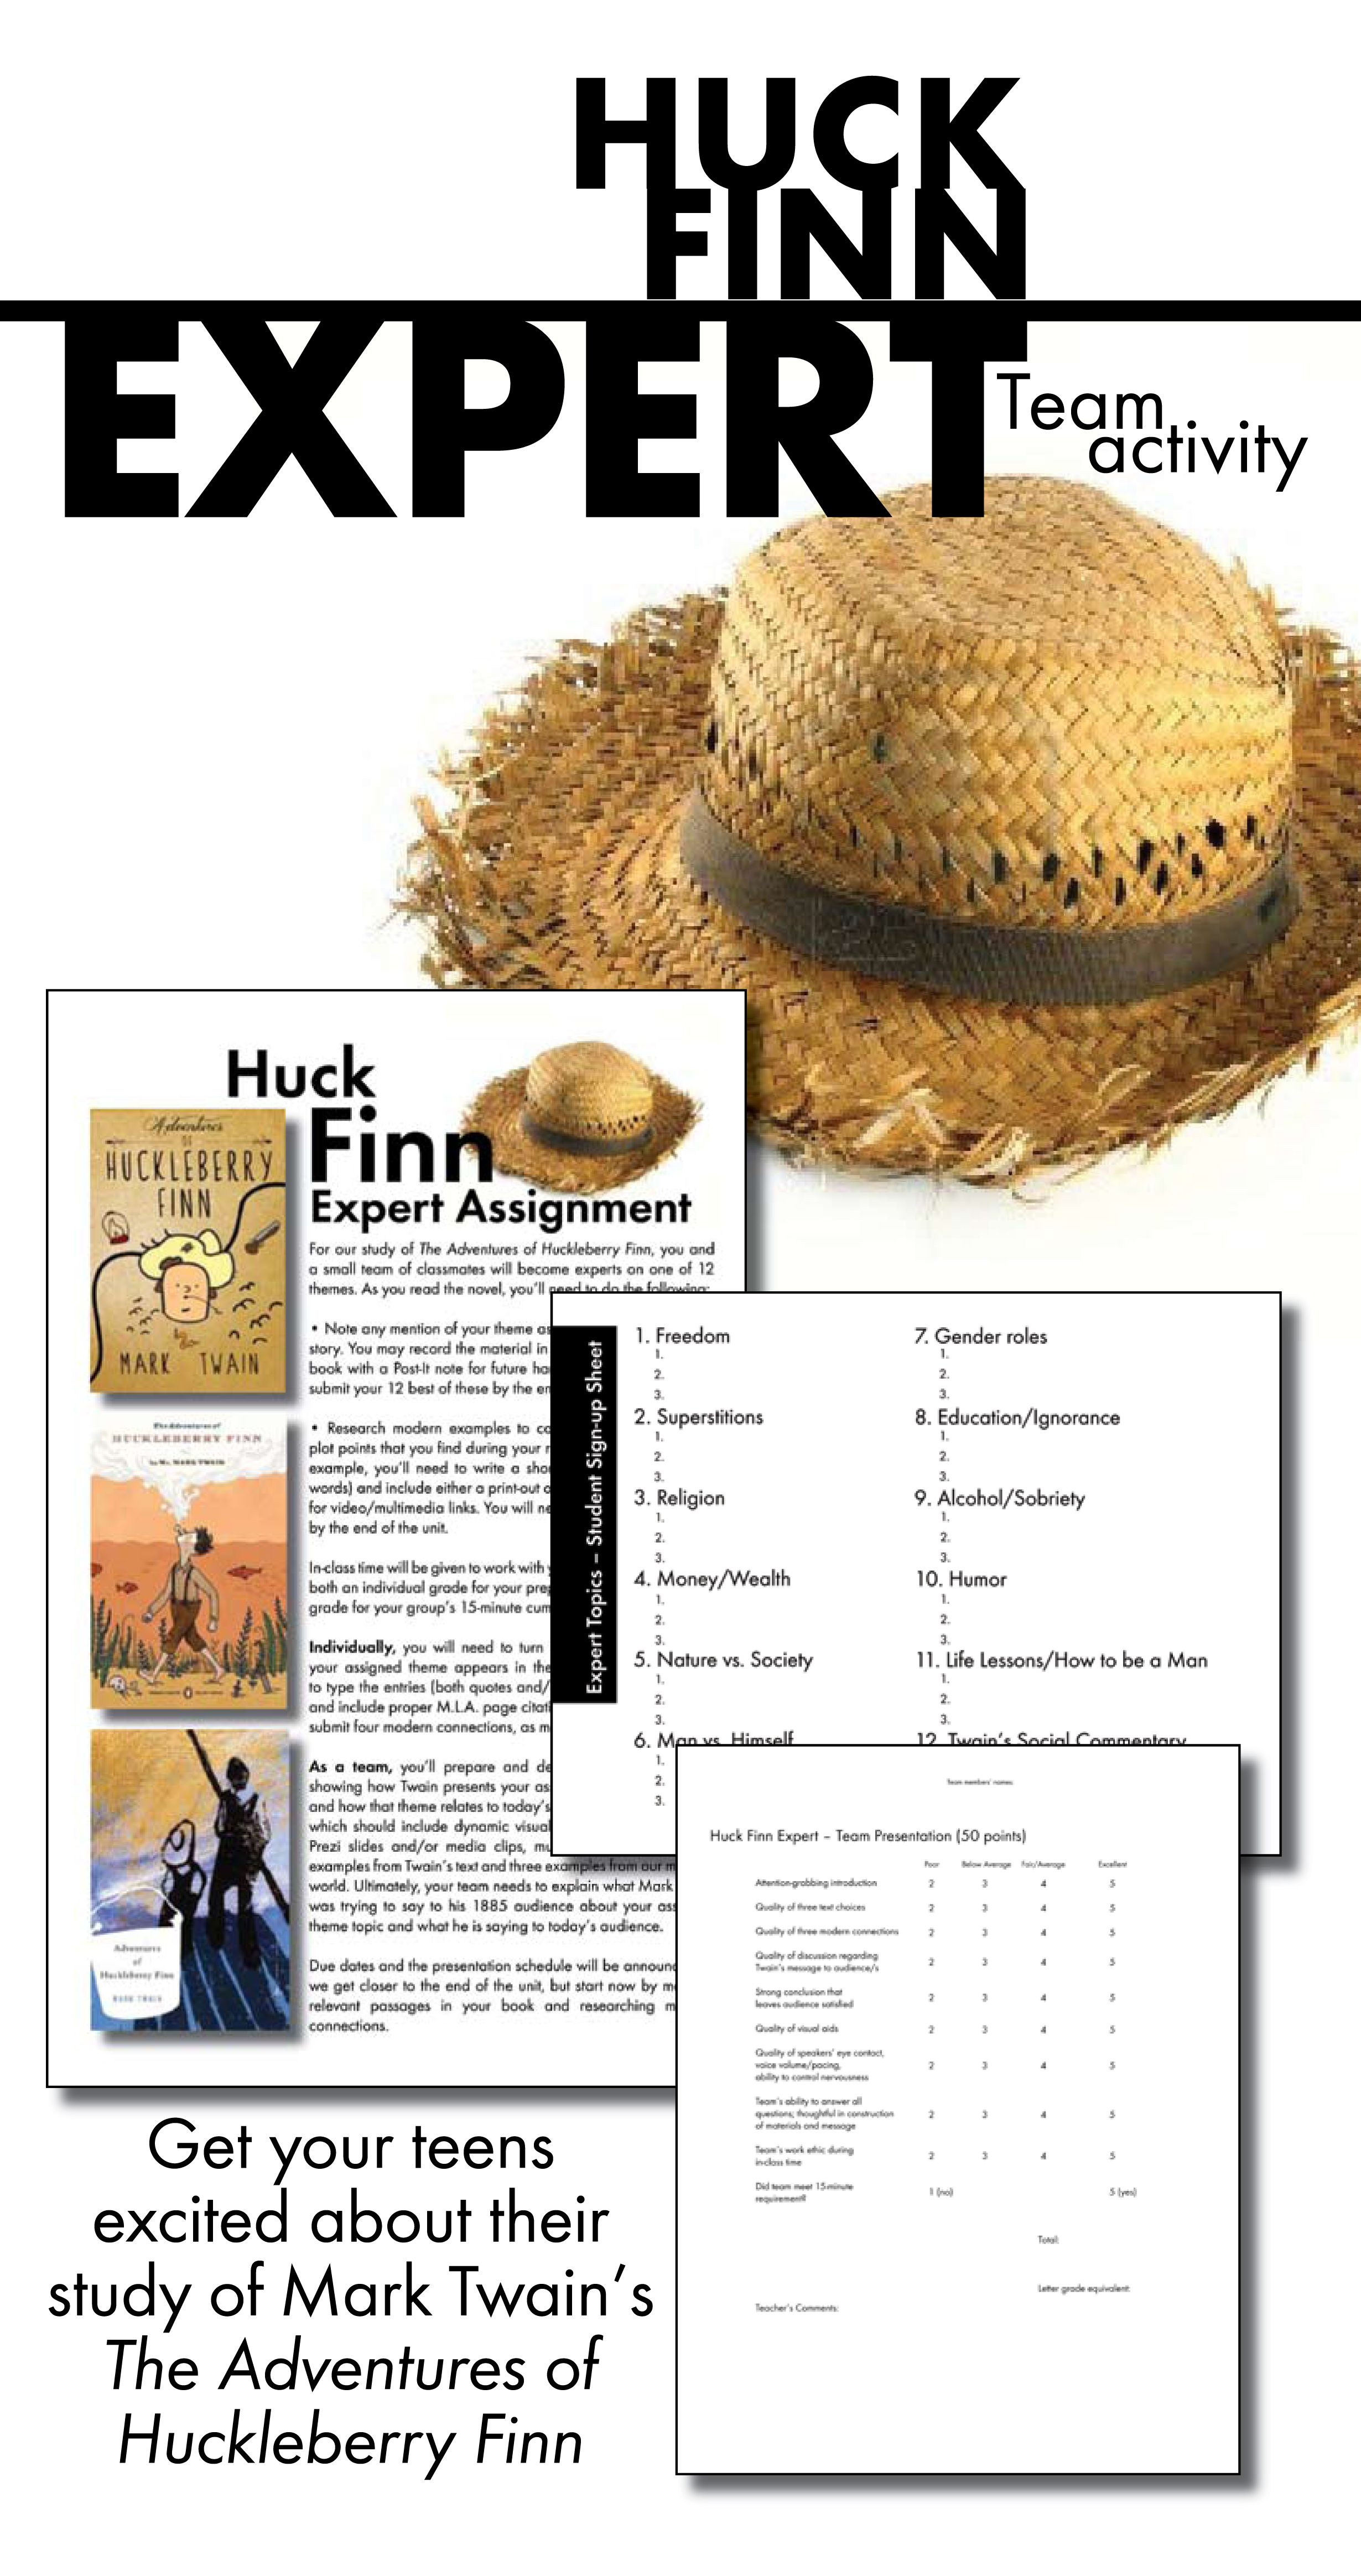 superstitions in huckleberry finn essay In mark twain's novel the adventures huckleberry finn, superstition is used throughout the story line, having a strong effect on the characters huckleberry finn and jim as they escape to freedom from slavery and civilized living.